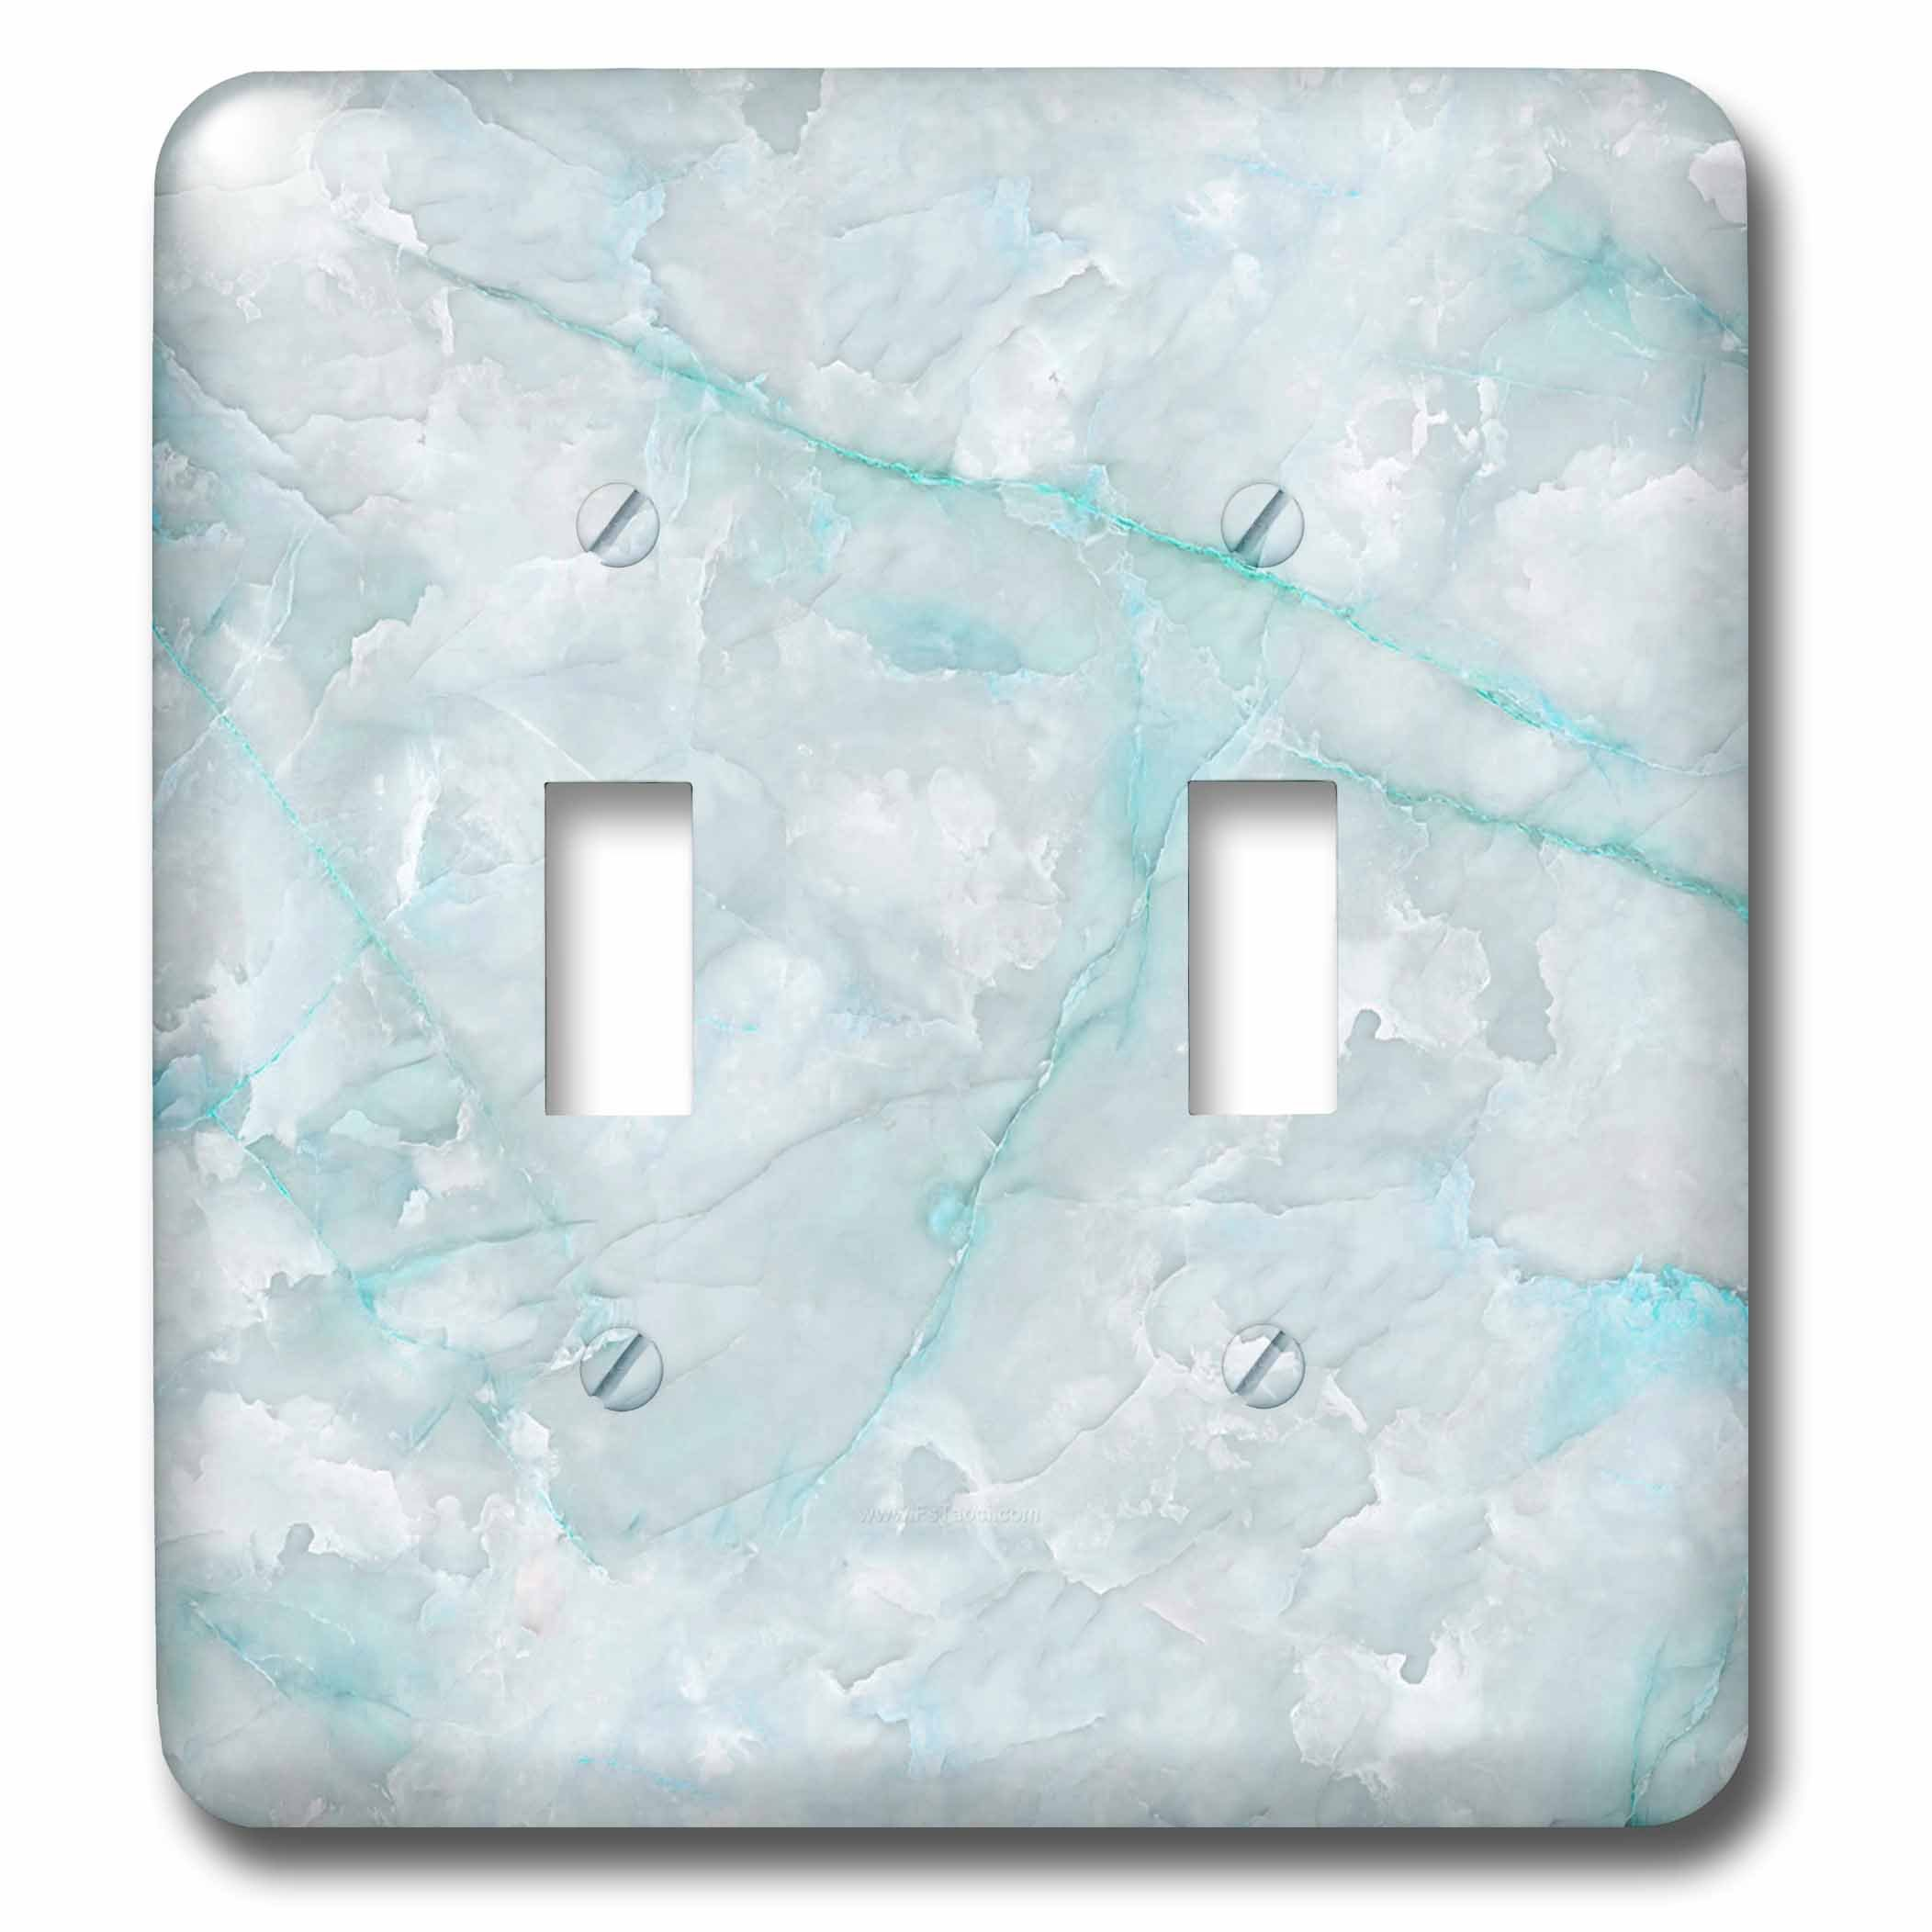 3dRose LSP_275124_2 Image of Trendy Luxury Aqua Teal Quartz and Gray Gemstone Agate Geode Toggle Switch, Mixed